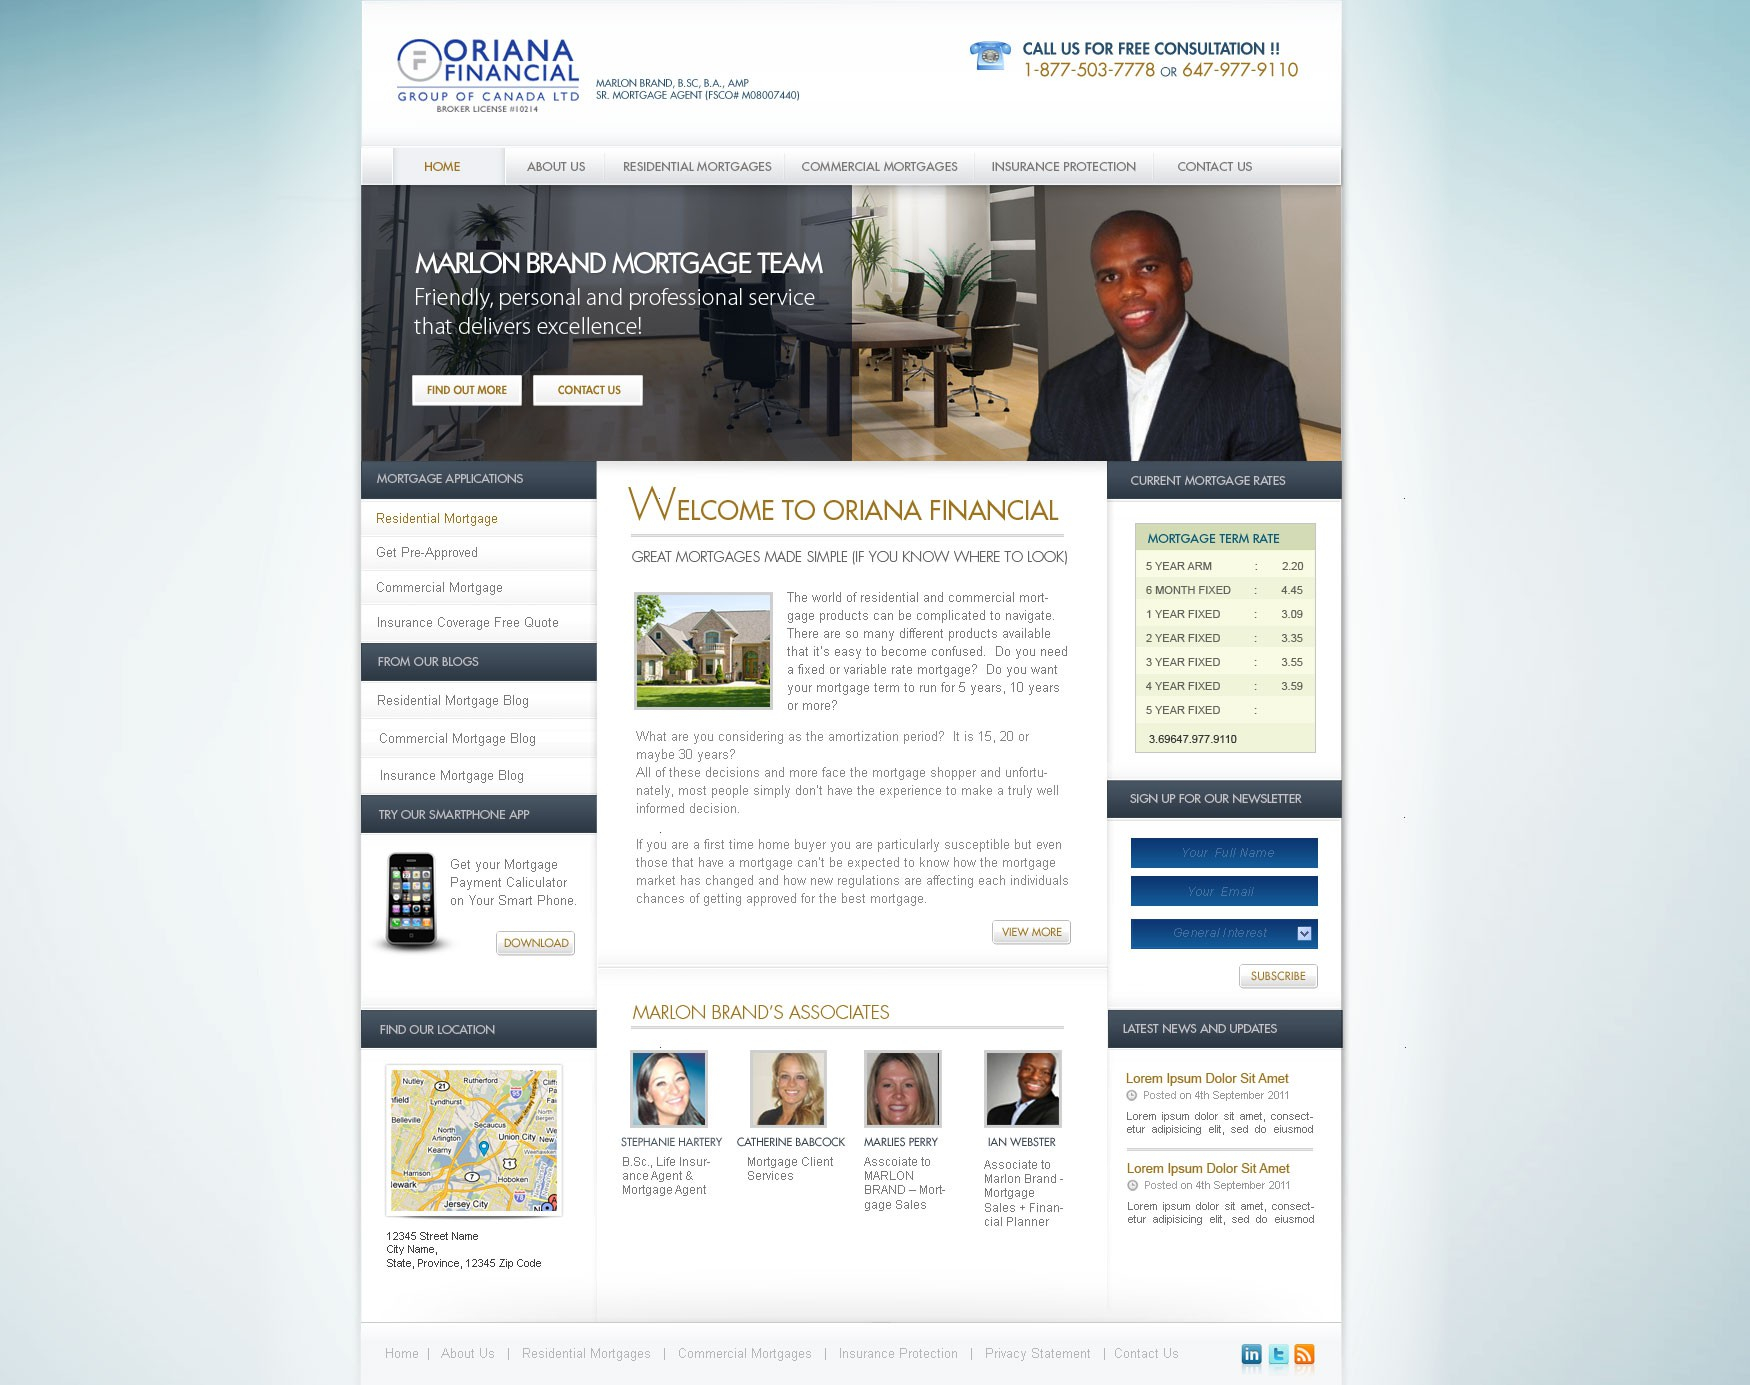 Help we are mortgage brokers at oriana financial with a new website design